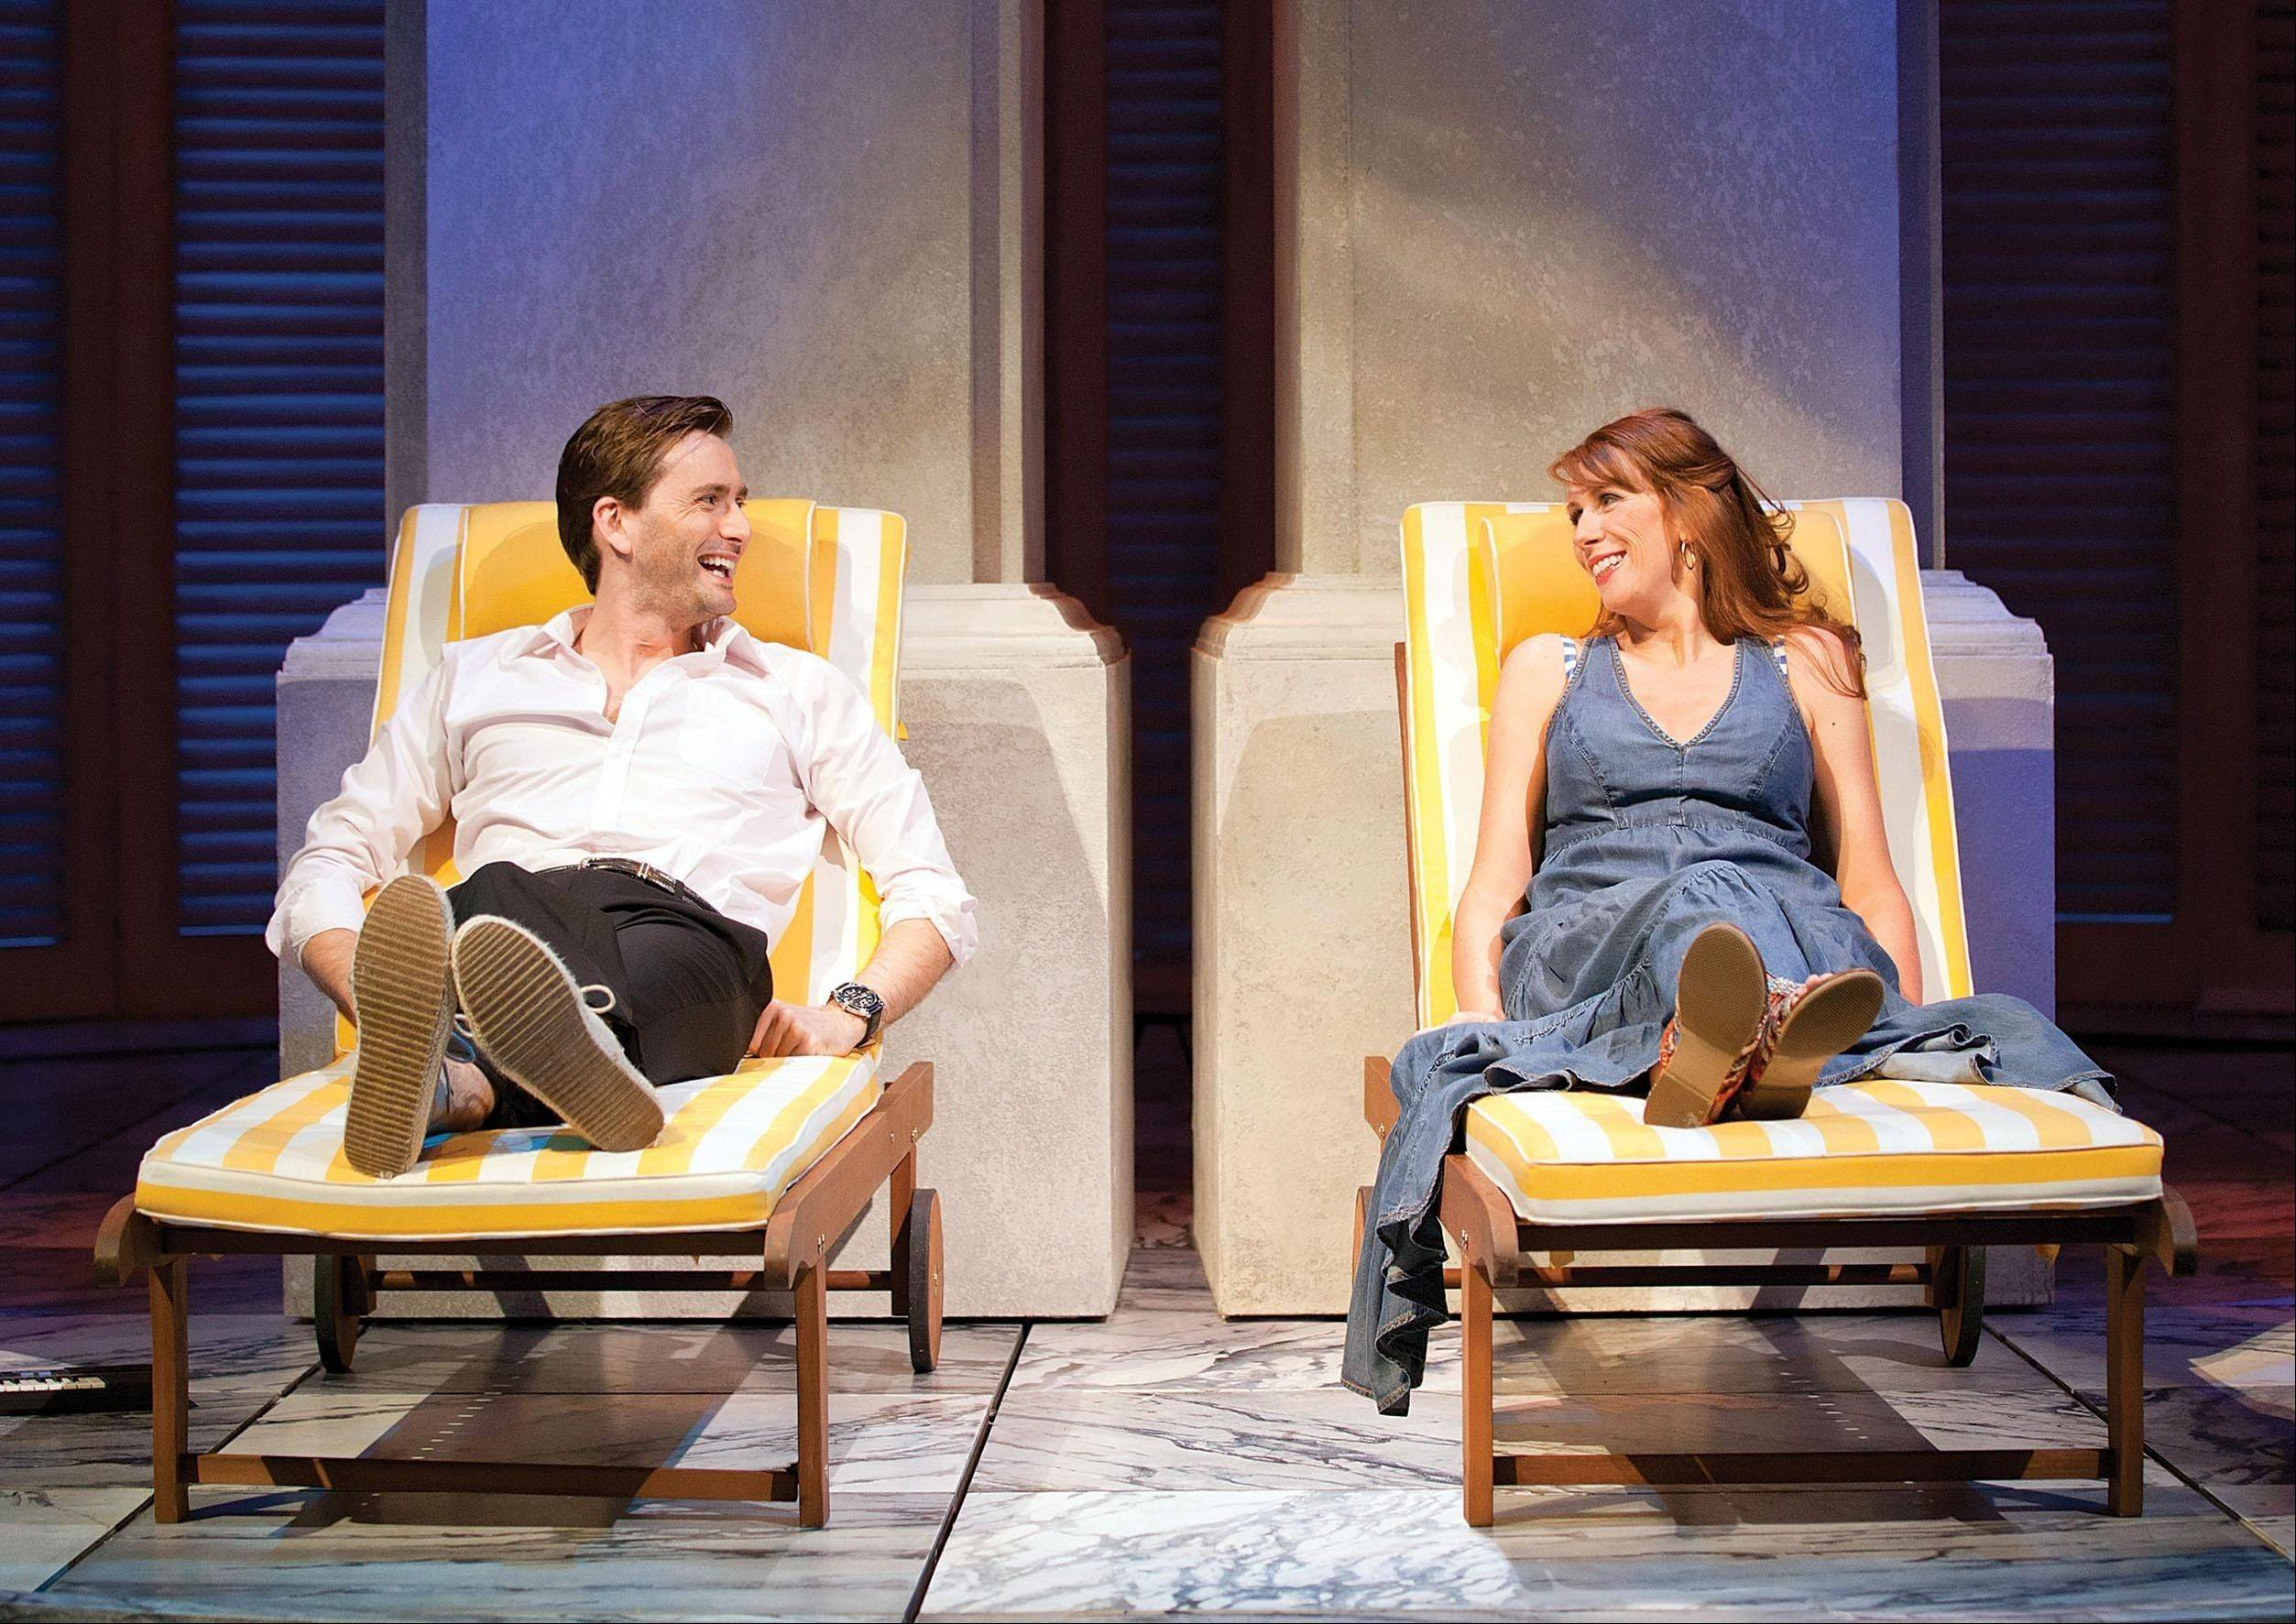 """Doctor Who"" stars David Tennant and Catherine Tate starred as Benedick and Beatrice in a 2011 London stage version of Shakespeare's ""Much Ado About Nothing."" The hit West End production is available to download from $START_URL$digitaltheatre.com;http://digitaltheatre.com$STOP_URL$."